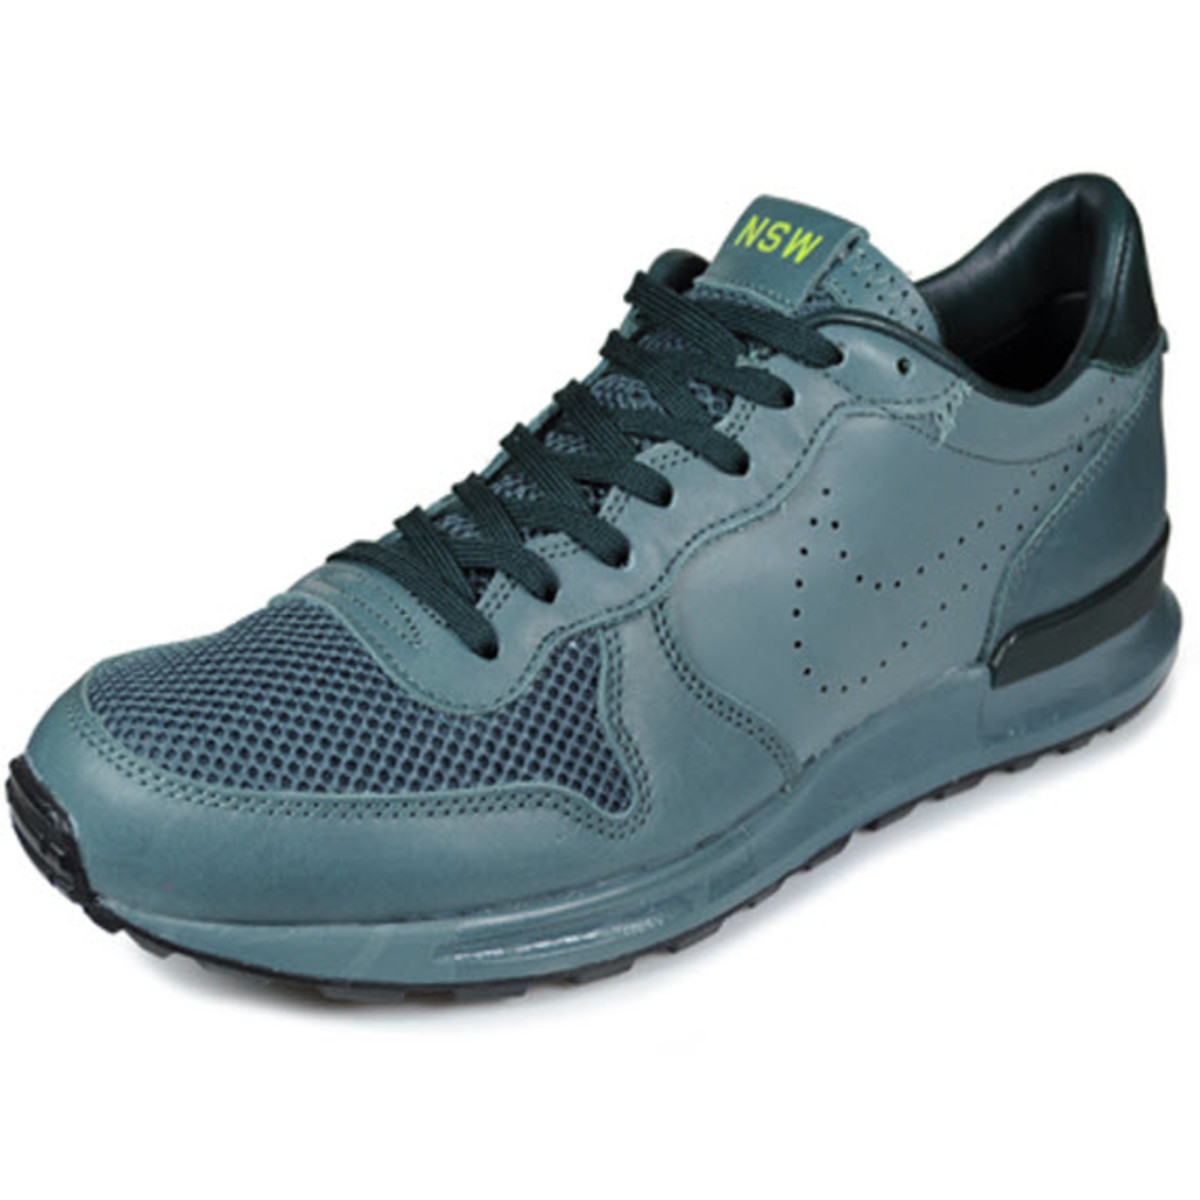 info for 5ad13 fd46f nike-air-solstice-premium-nrg-3m-2